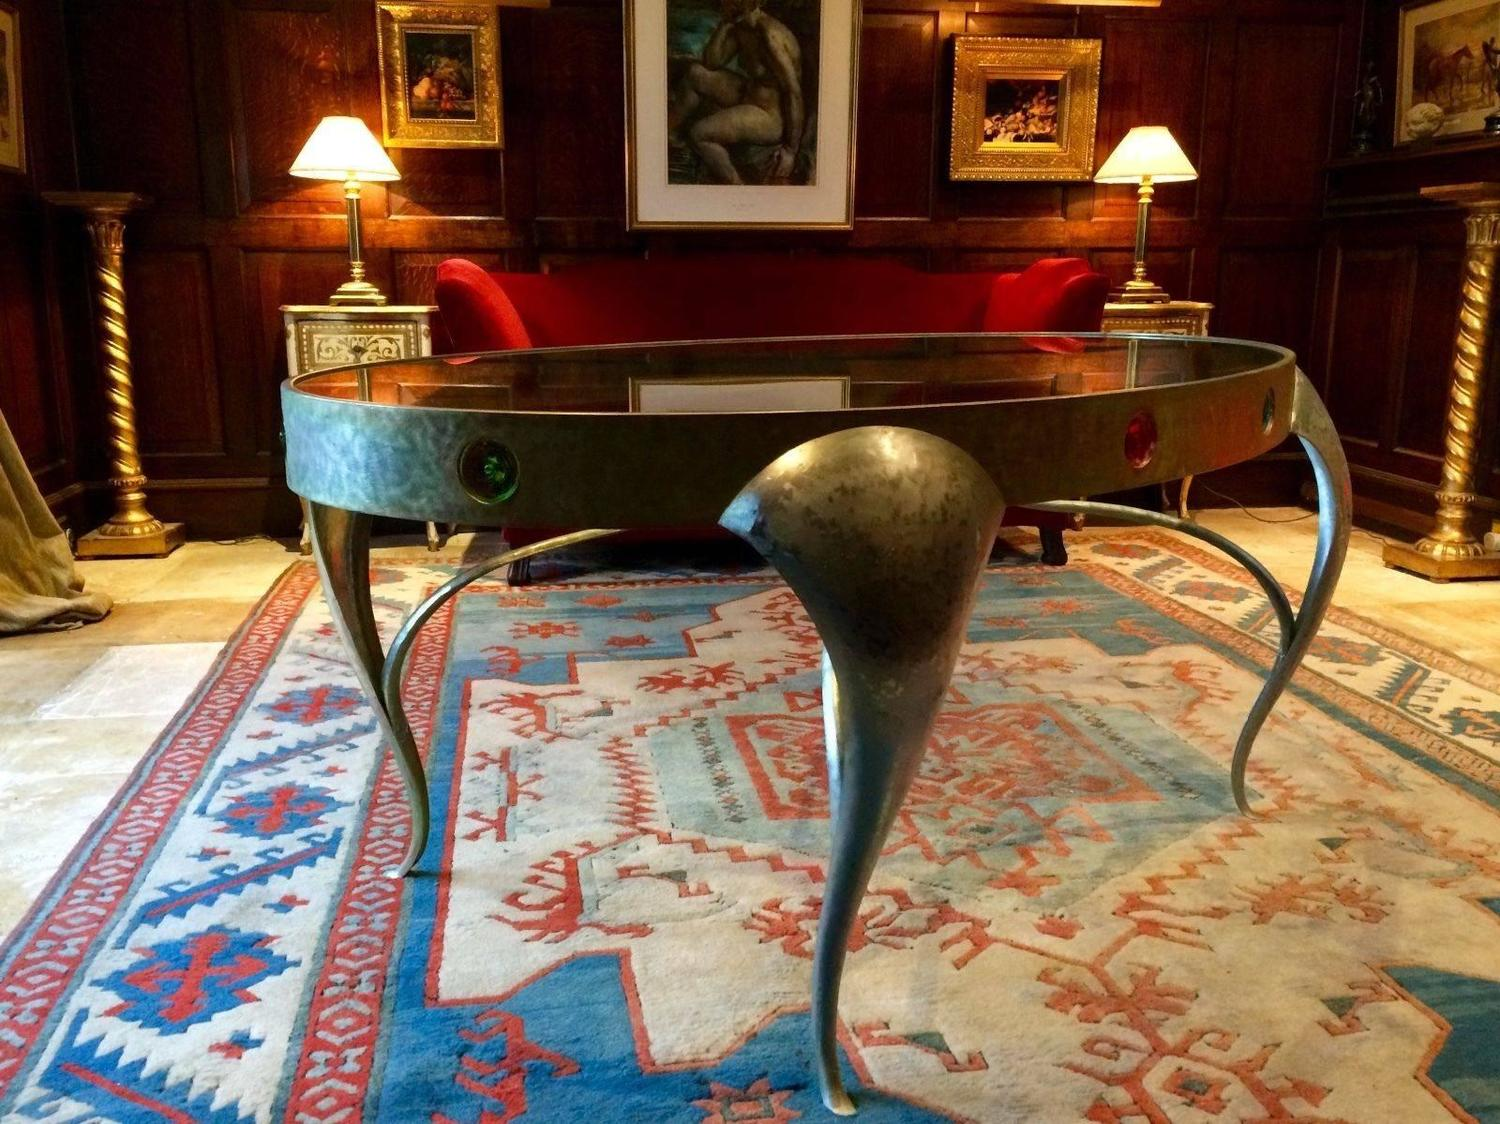 Bespoke Console Table Centre Table Circa 1960s Steel And Glass Unique For Sale At 1stdibs: bespoke glass furniture